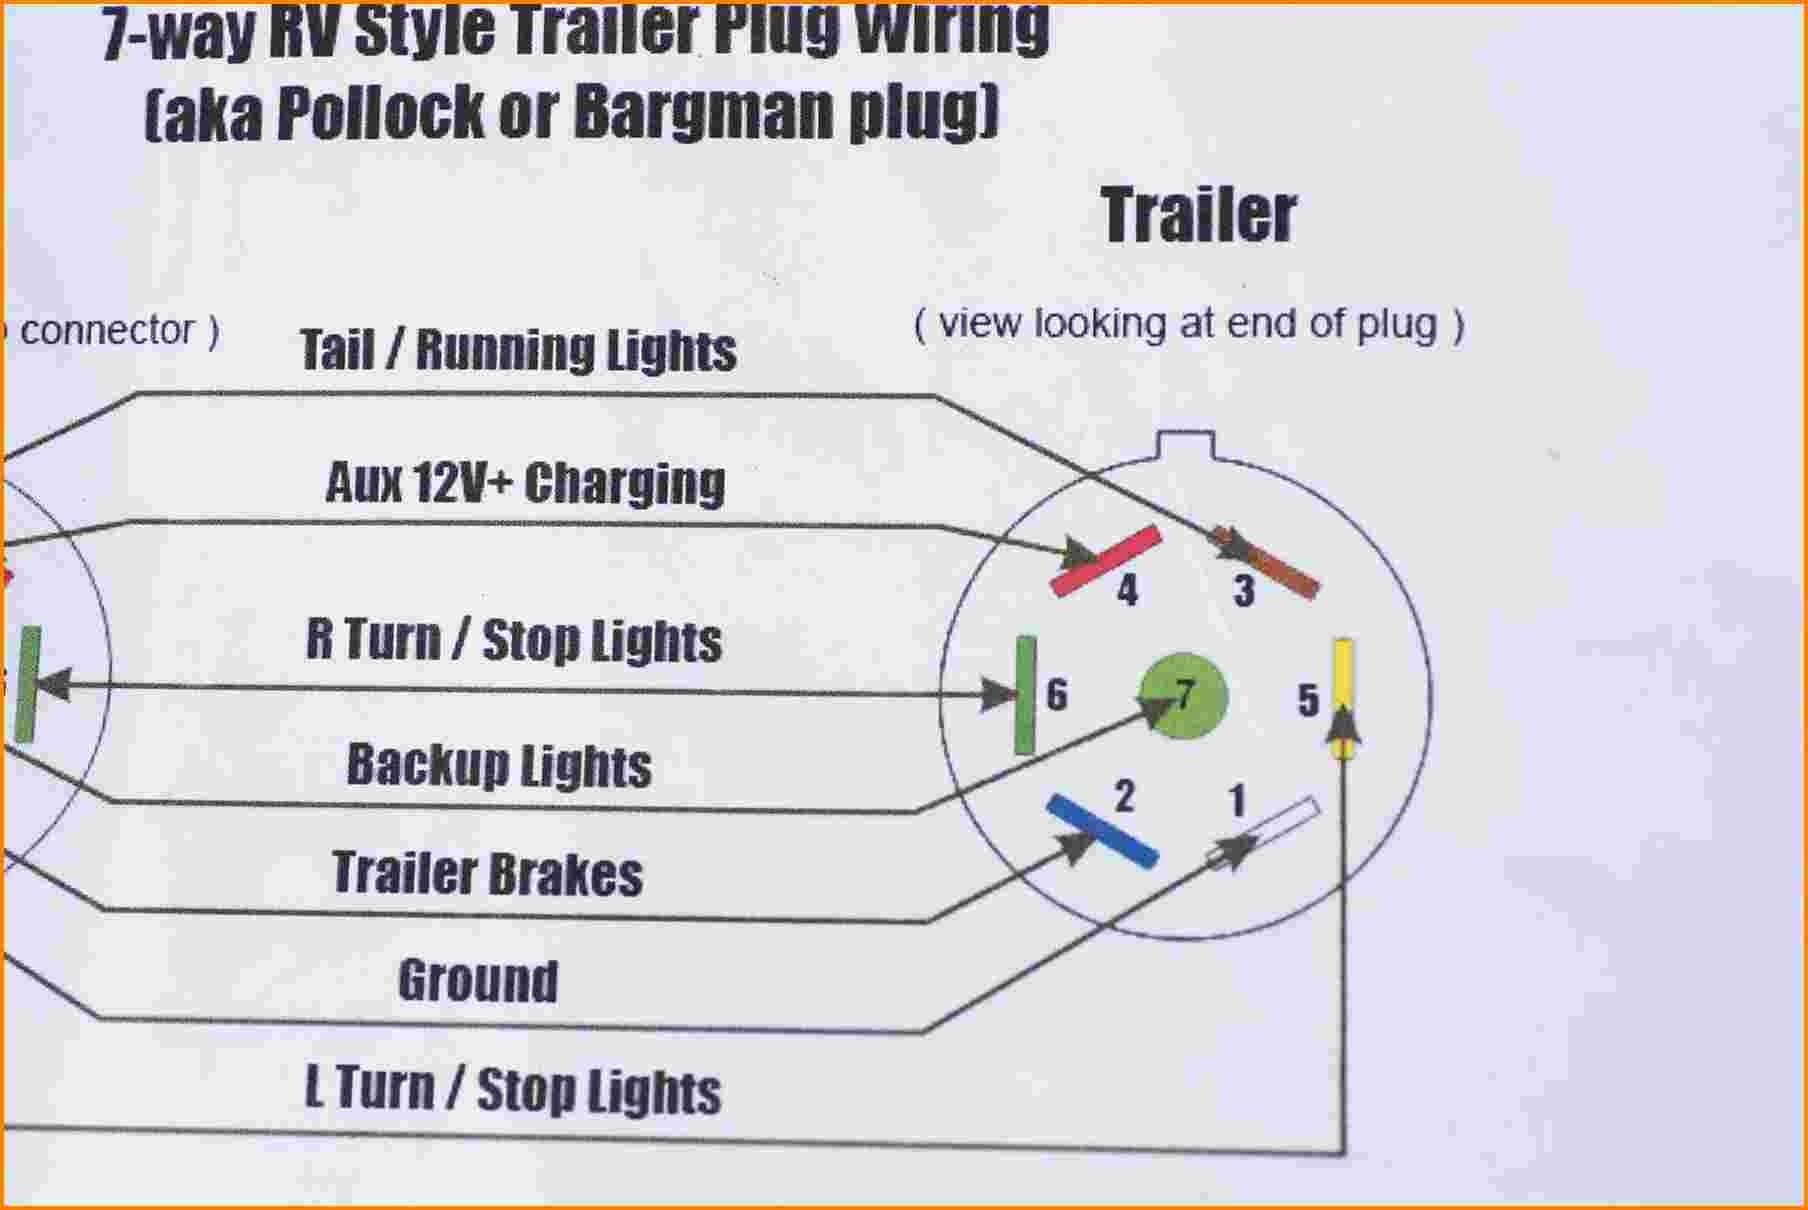 Old Trailer Wiring Diagram Valid Tractor Beautiful Pollak Of At 12 - Old Trailer Wiring Diagram